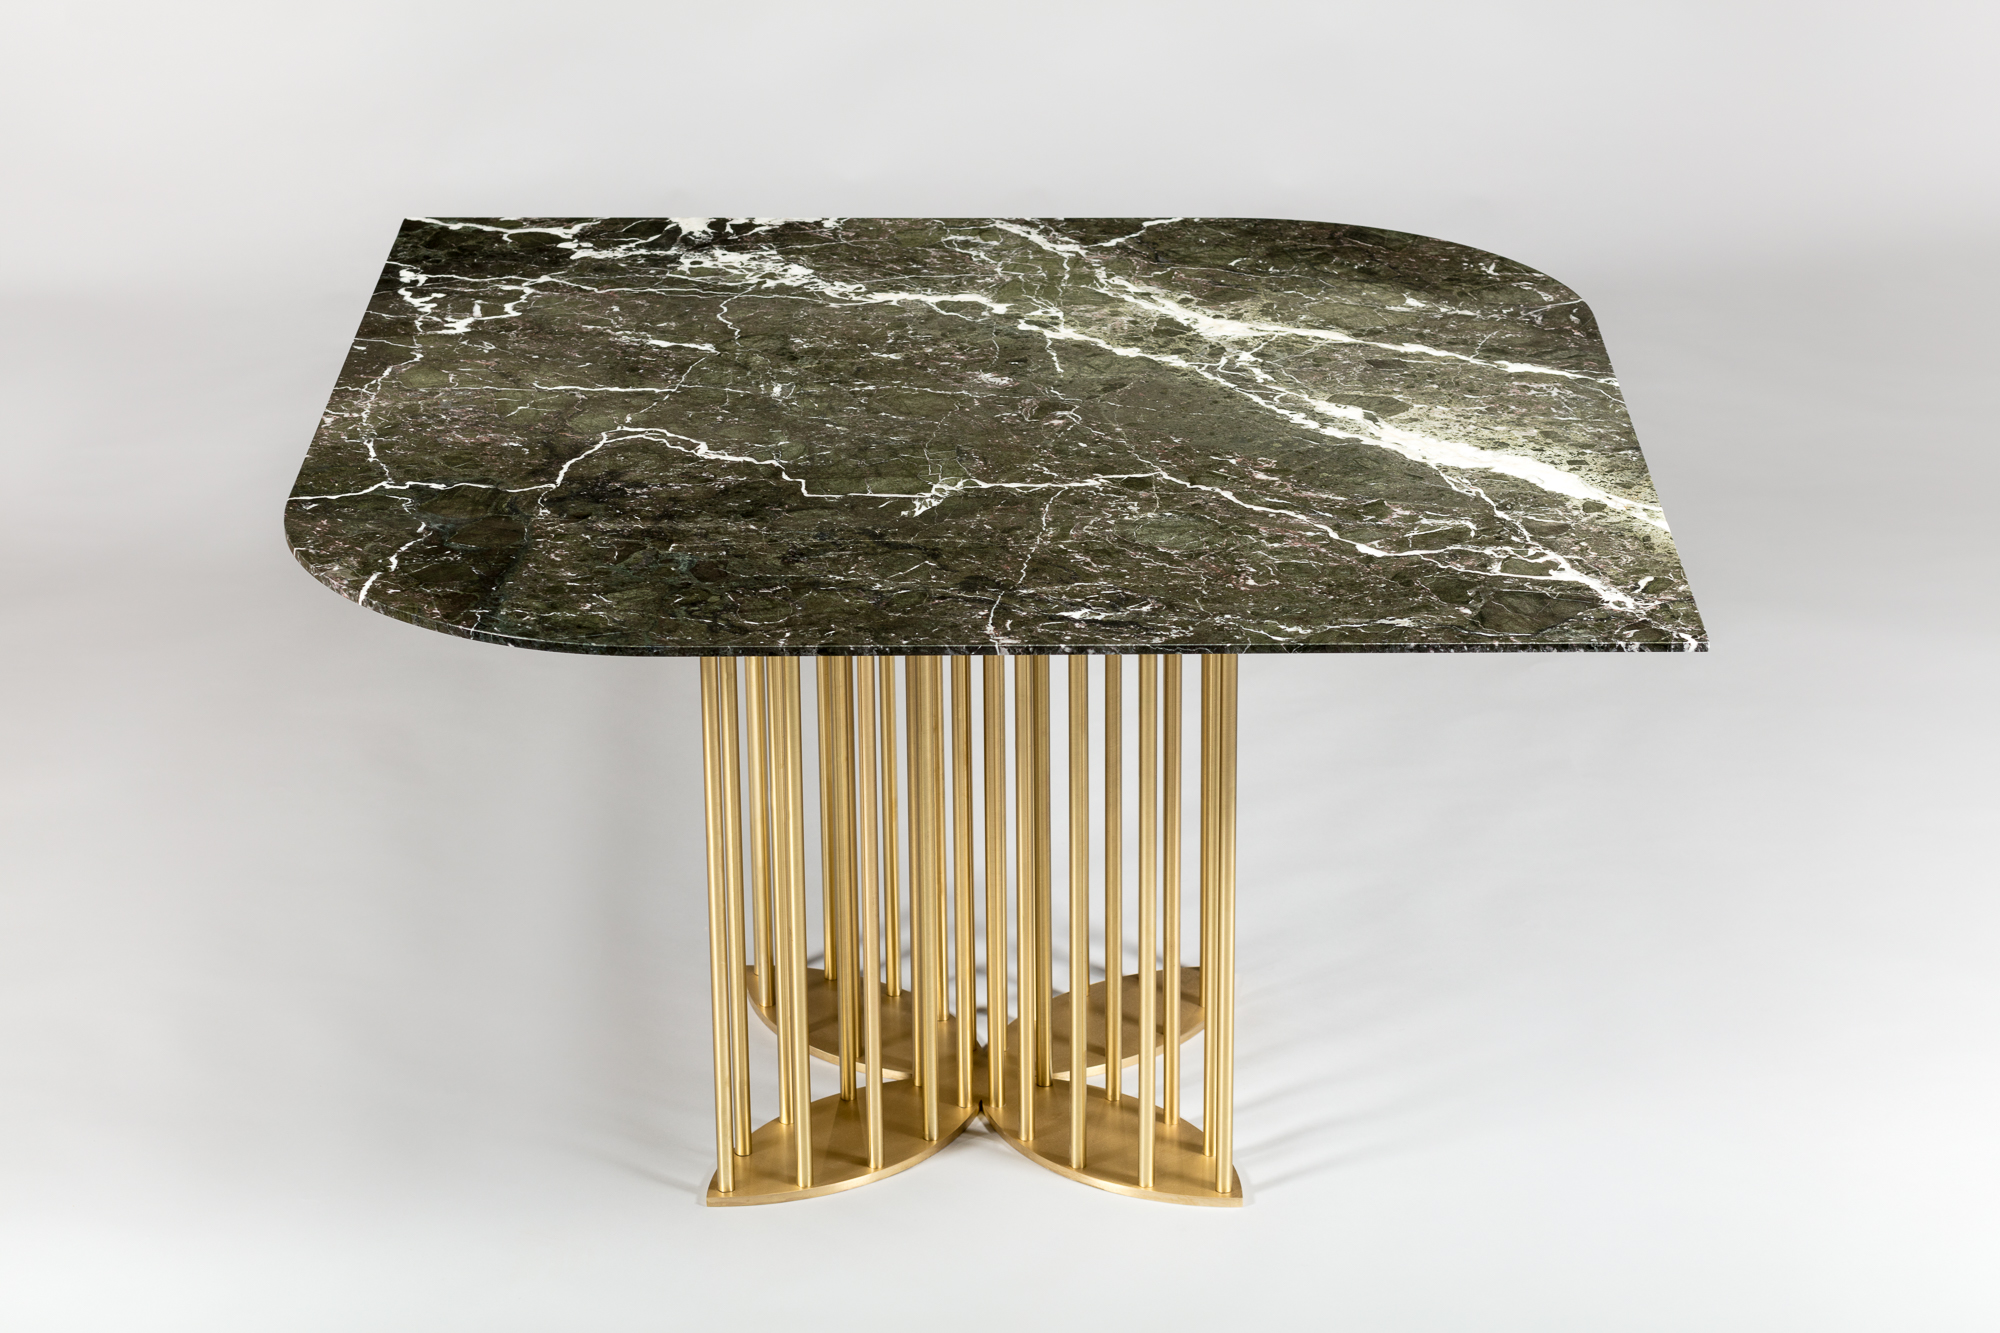 Top : Verde Levanto Marble  Base : Solid Brass